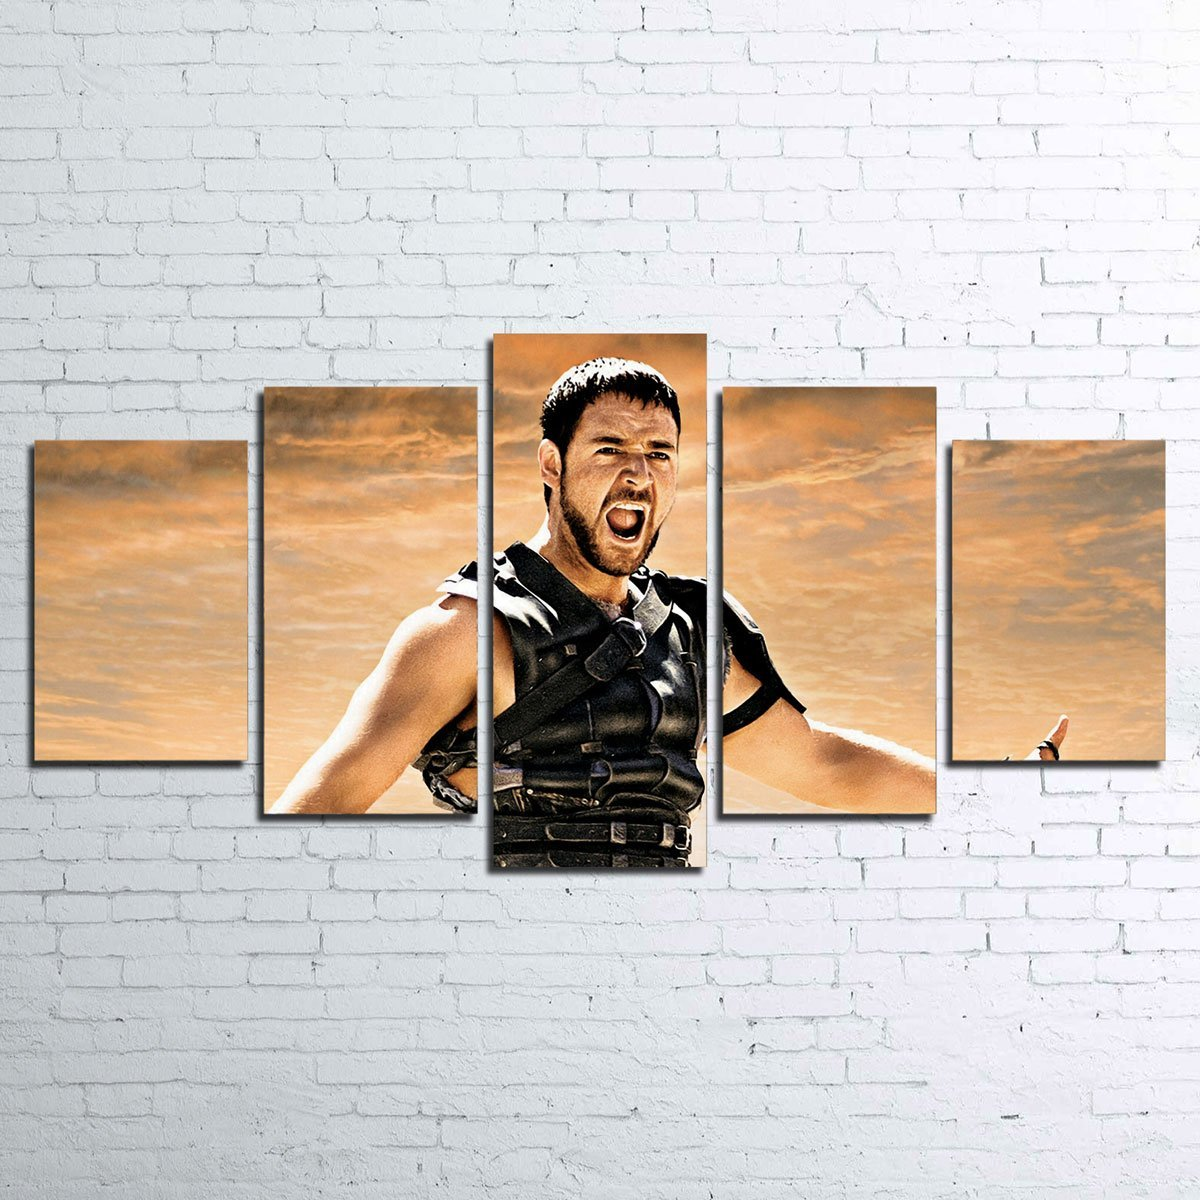 Gladiator 5pc Canvas Set